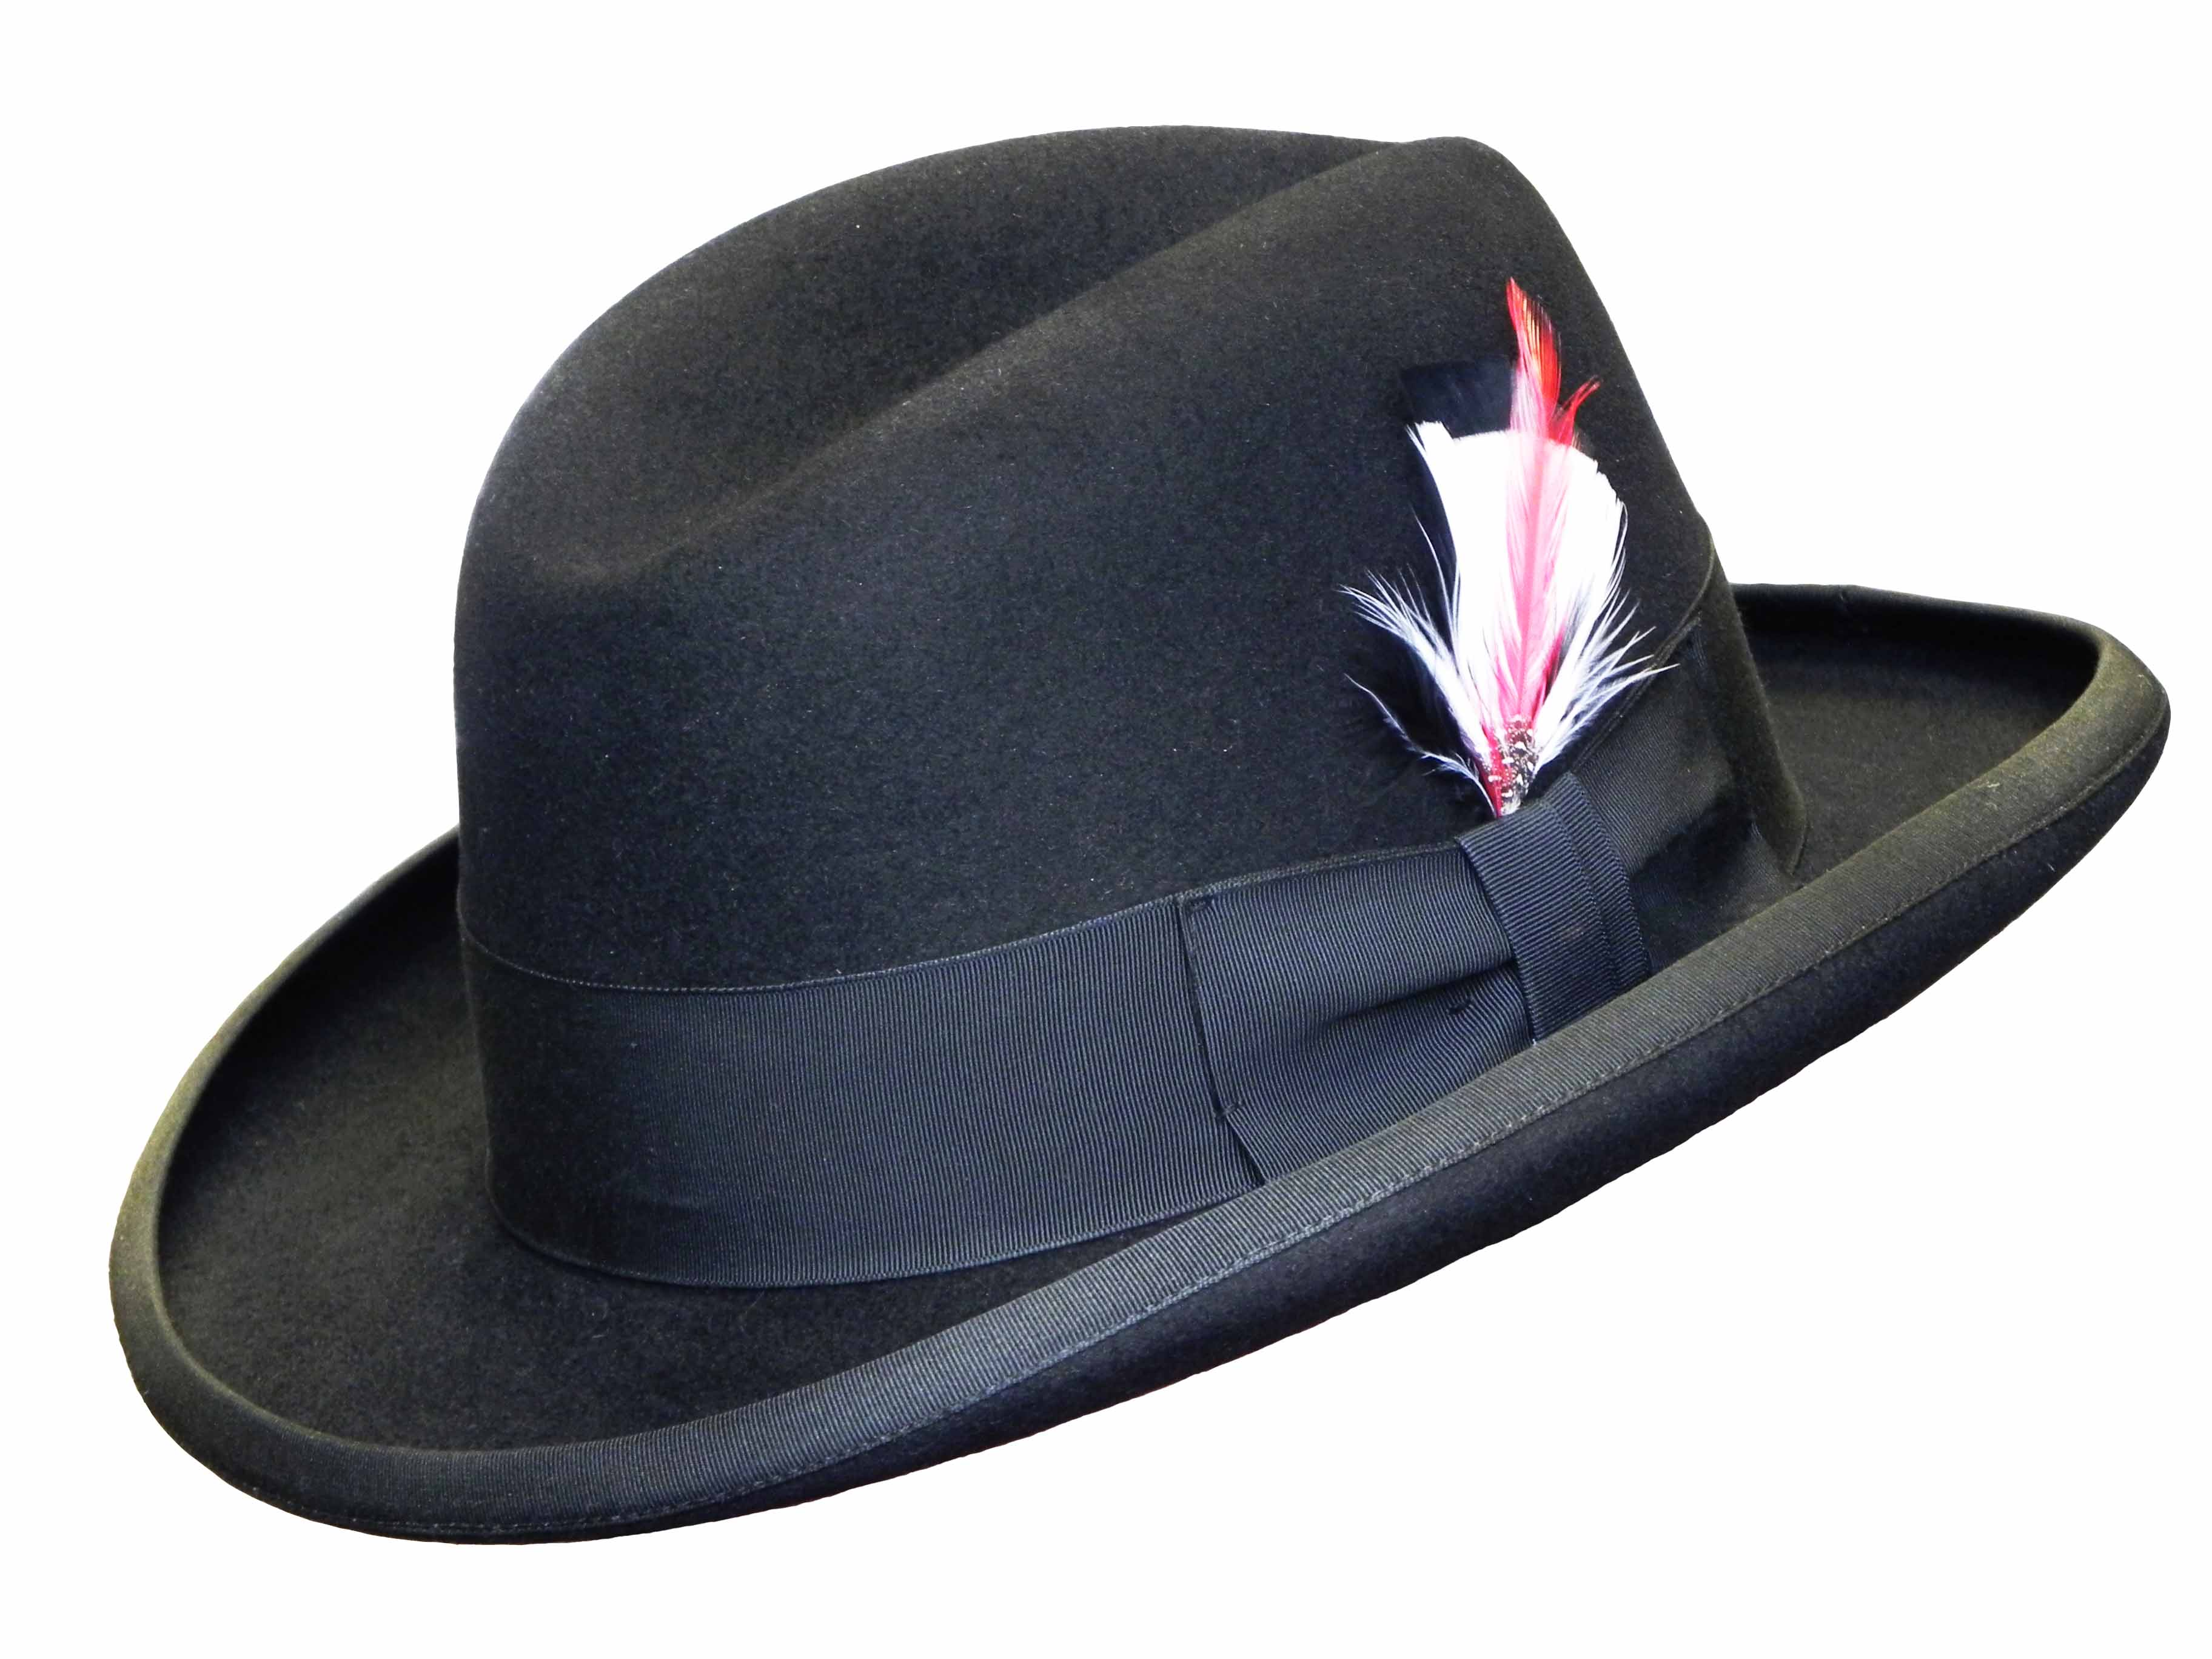 The Homburg Mike The Hatter Some guys like to wear their homburg for all occasions, though, and that's just. the homburg